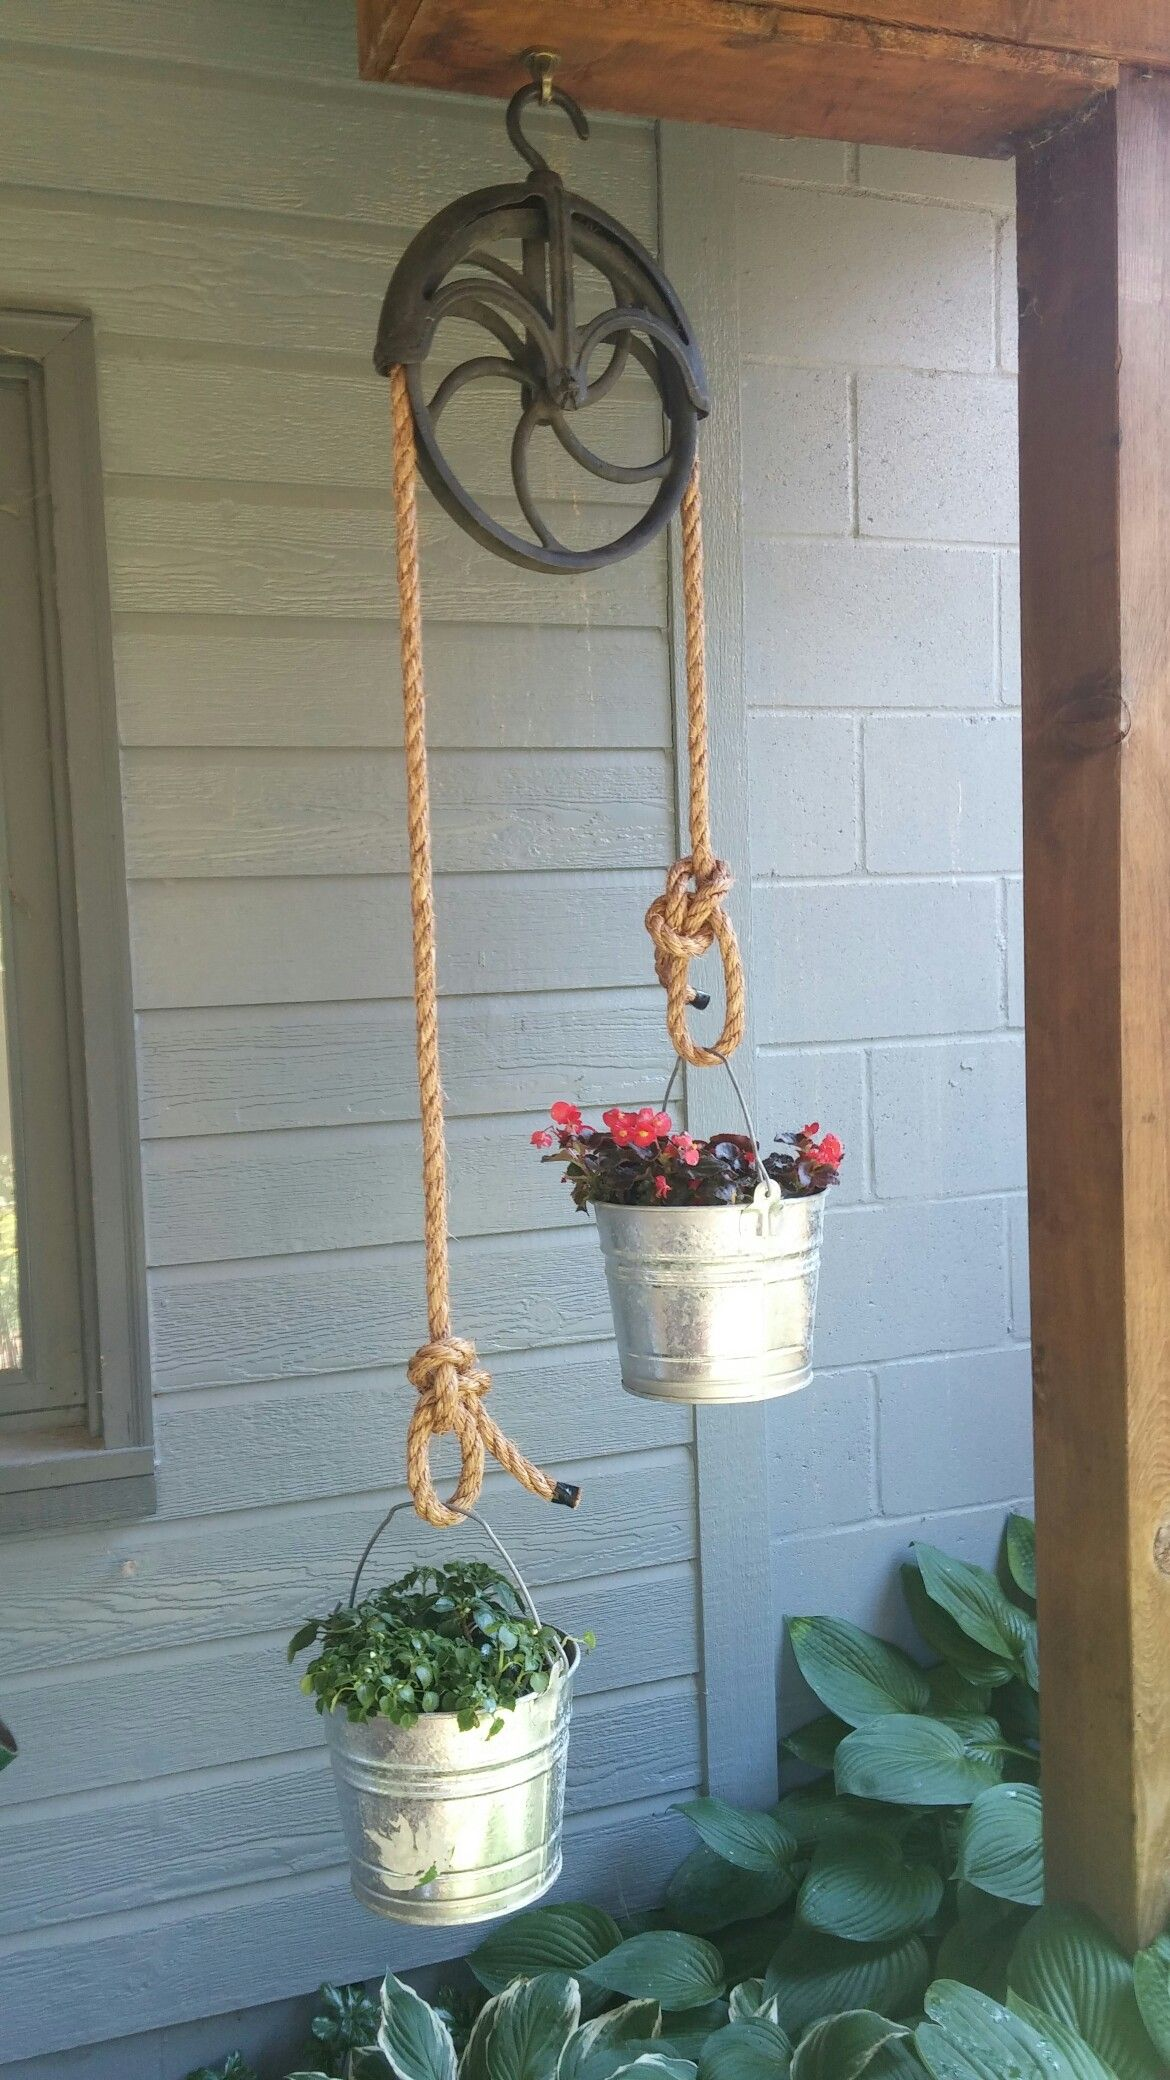 My new upcycle! Old well pulley planter with aluminum buckets! Bowline knots coutesy of DH.